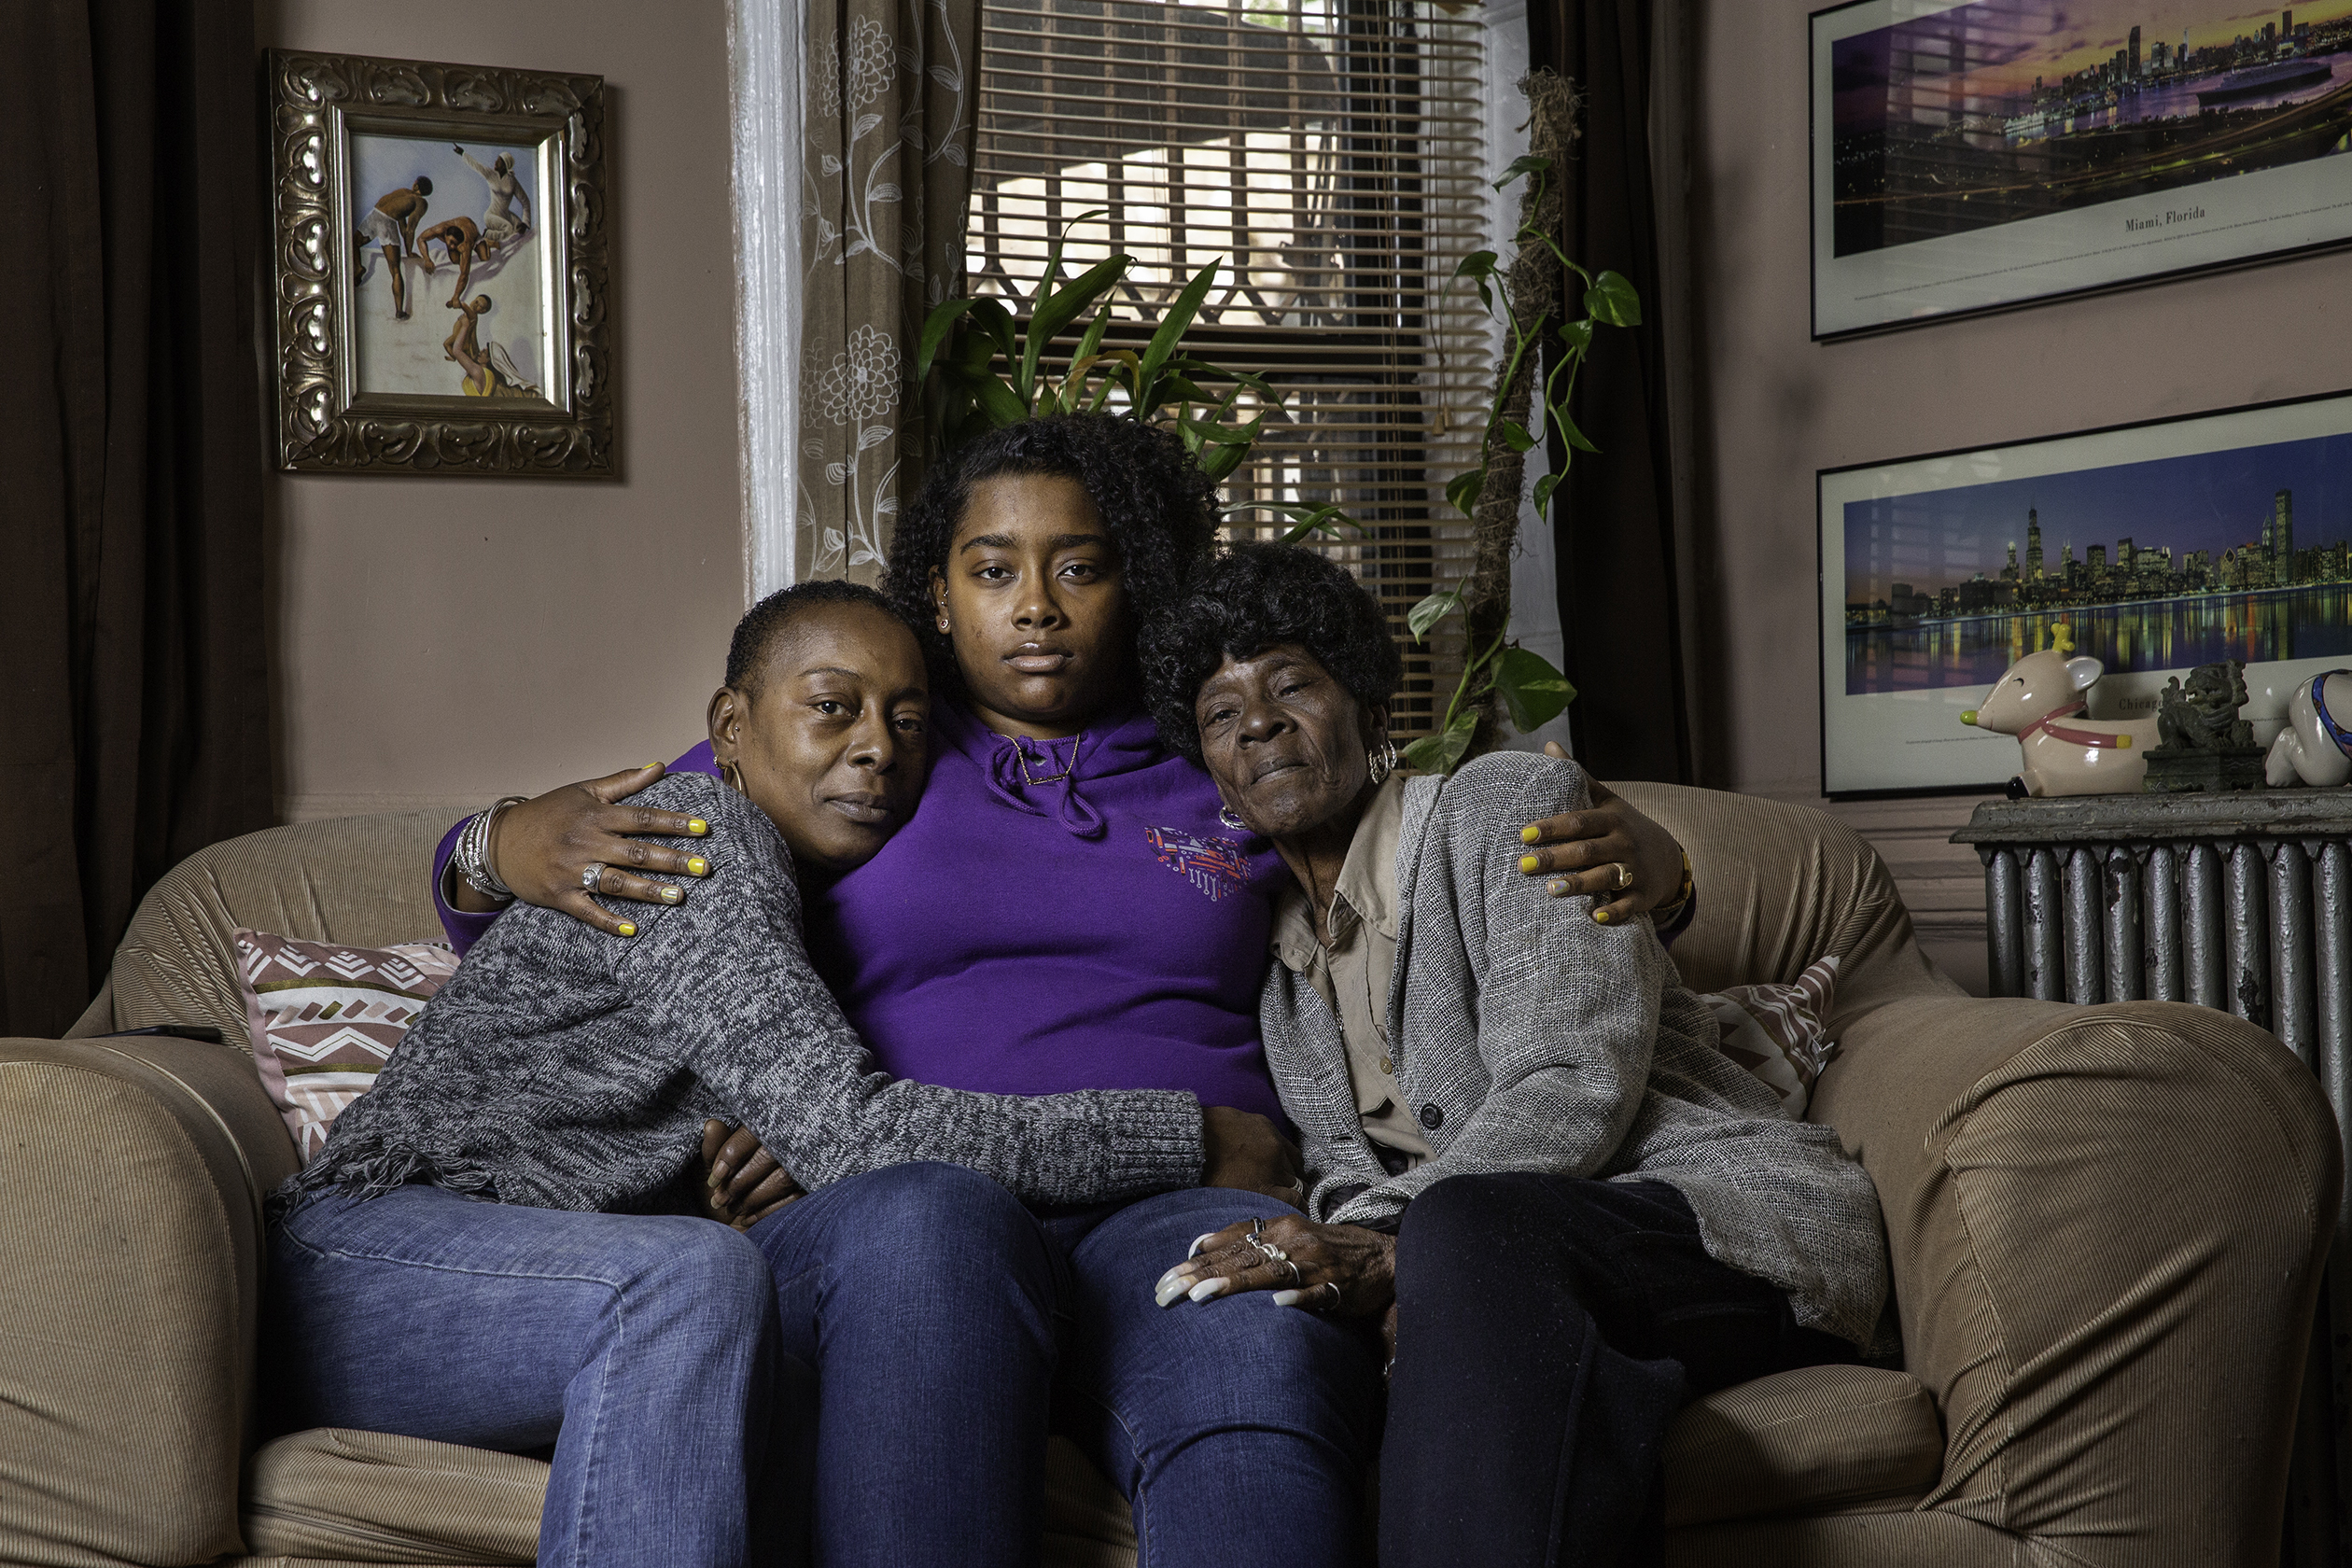 Taji M. Riley with her mother, Mary L. Johnson (left) and grandmother, Mary L. Johnson (right) at their home in Bronx, New York on April 27.